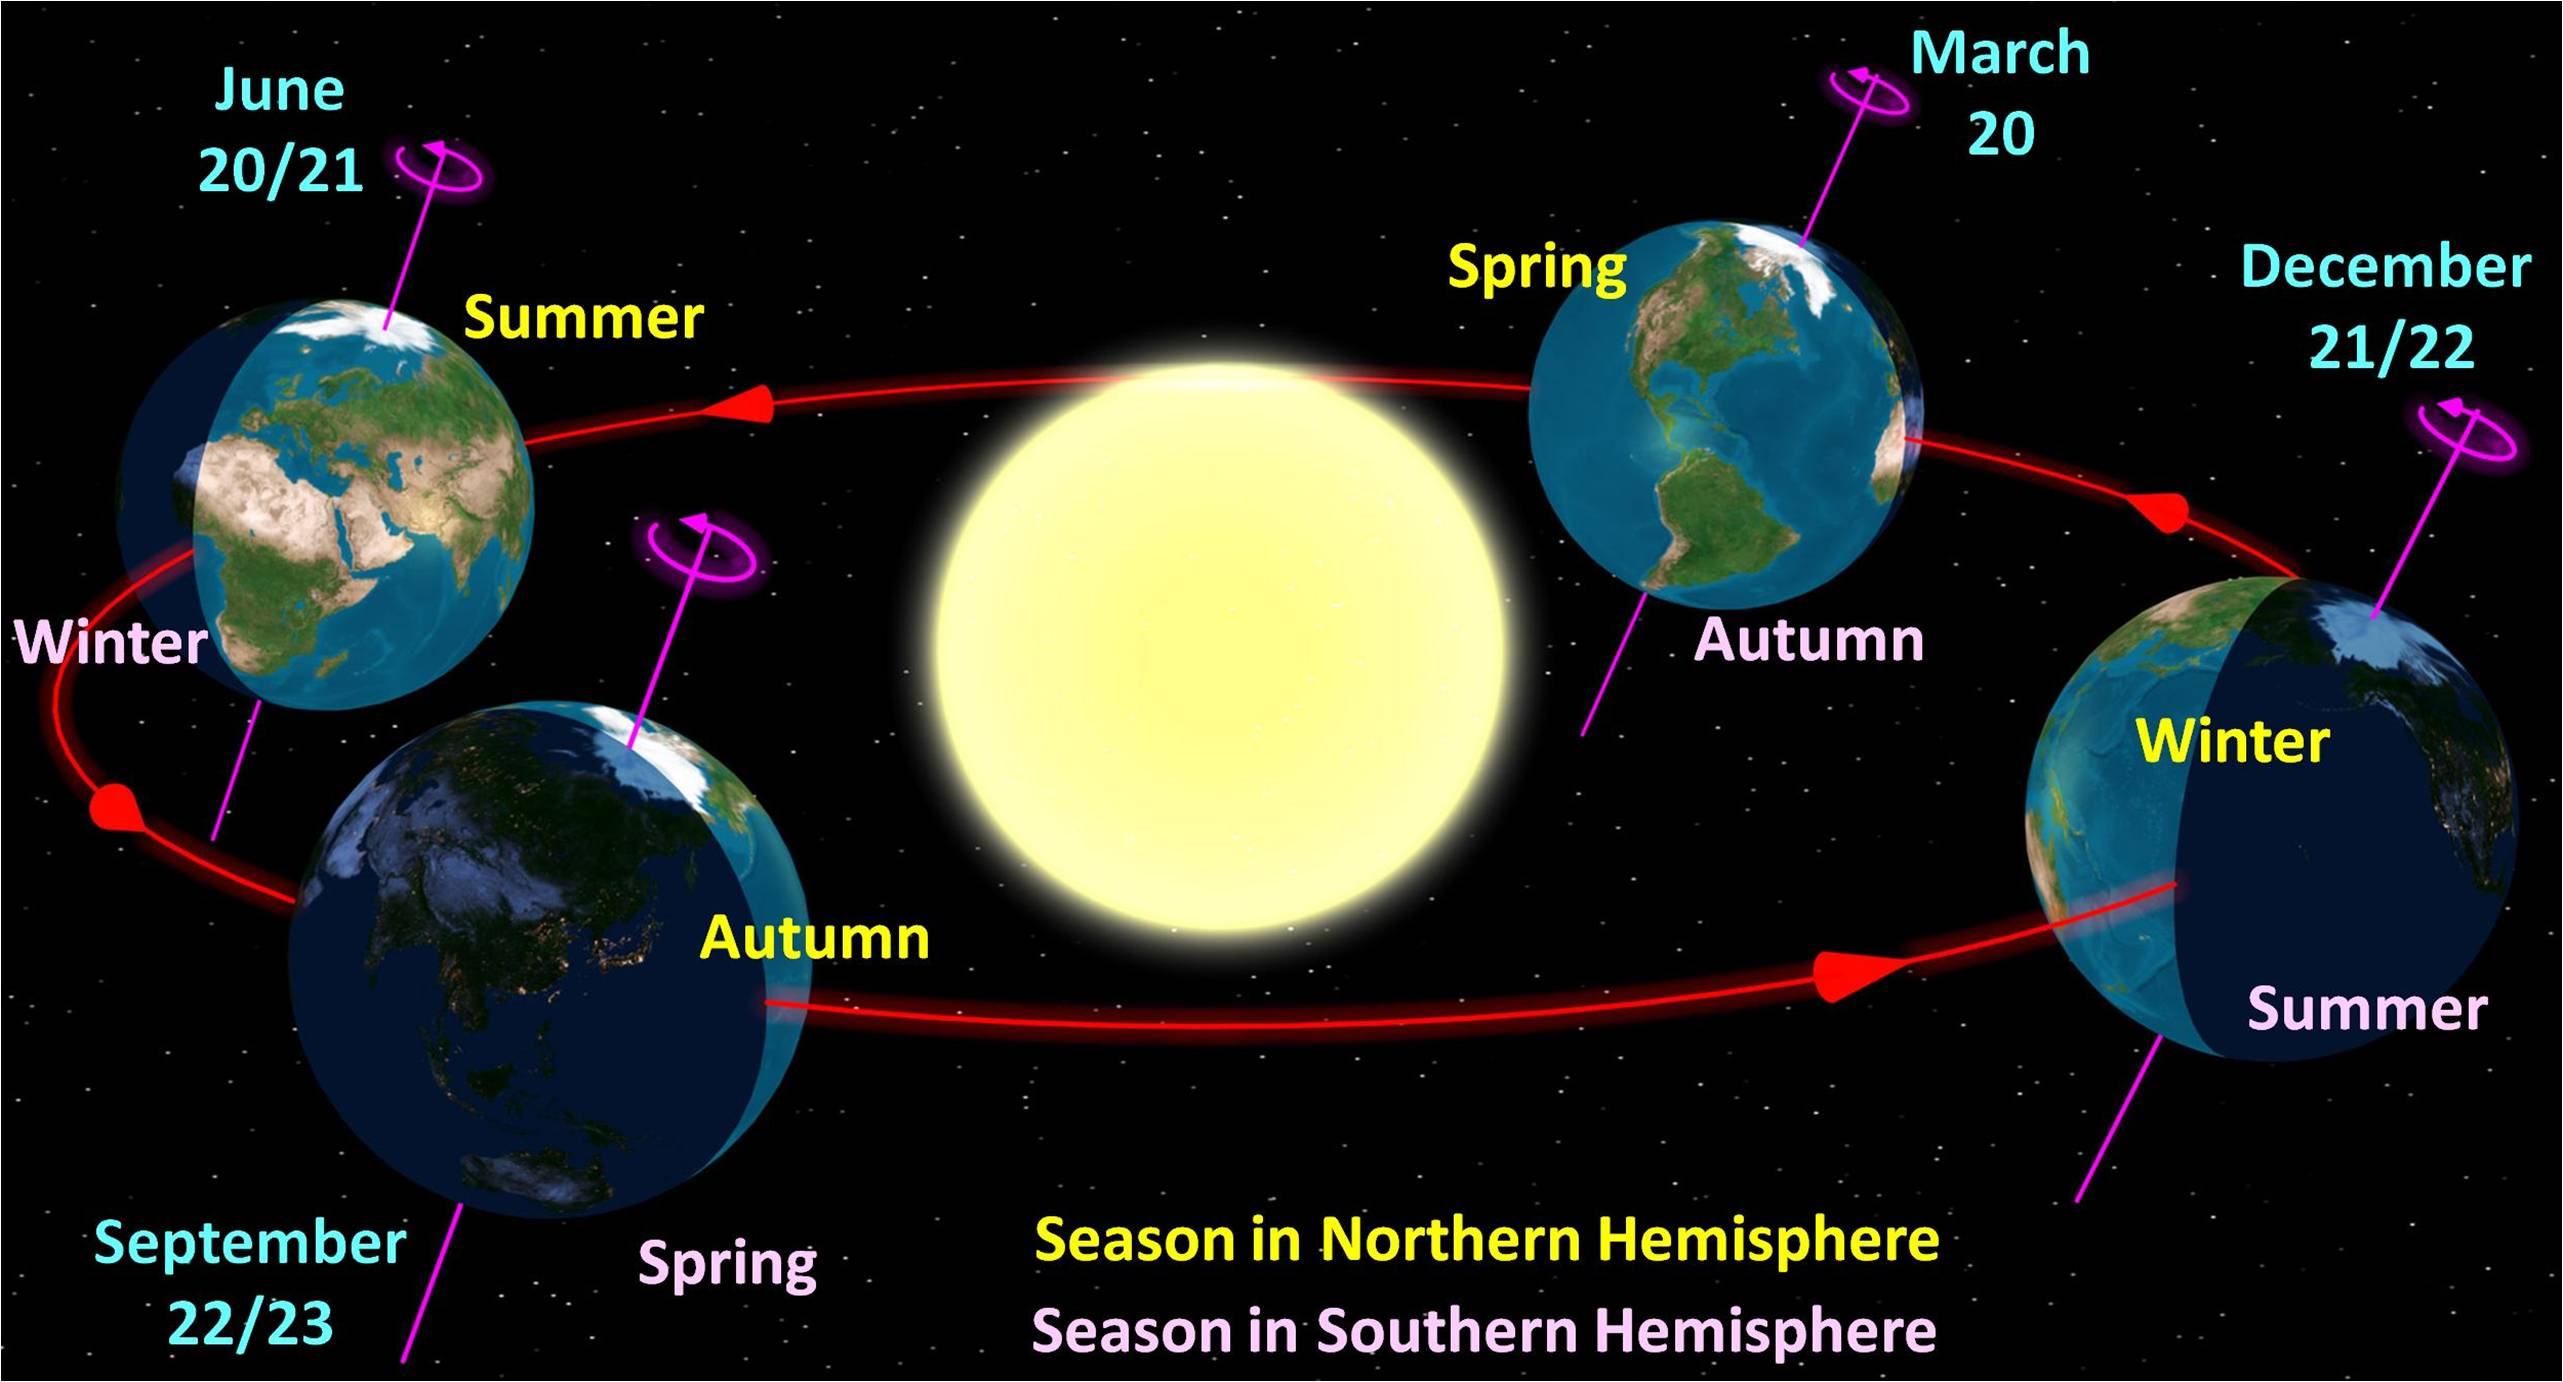 Sources: http://en.wikipedia.org/wiki/Equinox